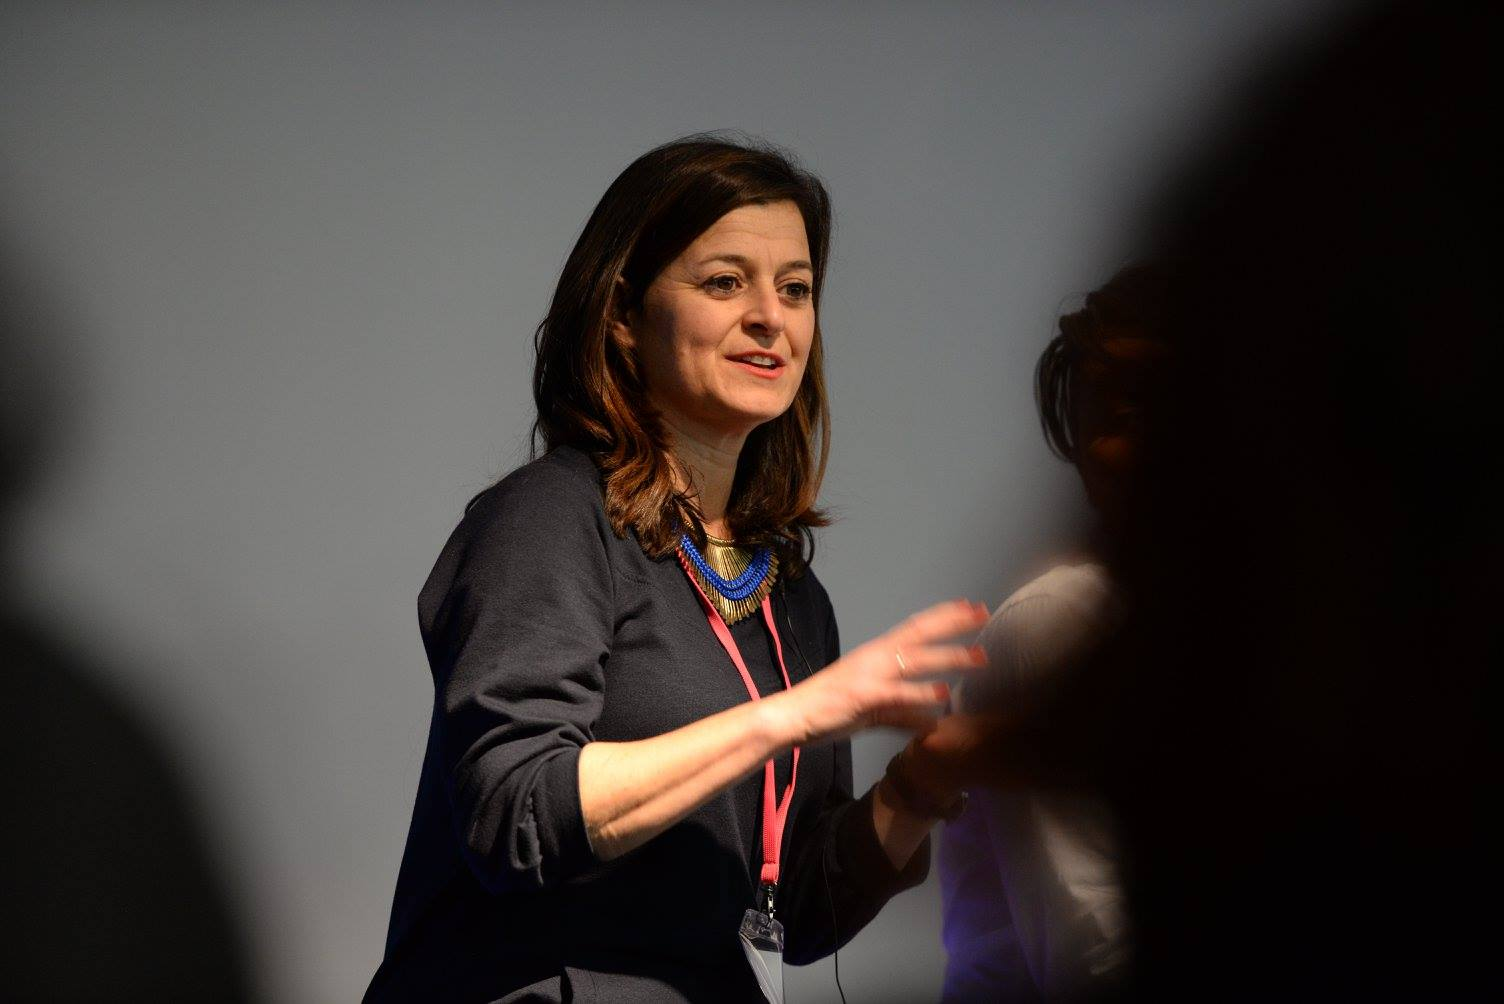 Susan speaking at the Women's Wellbeing Conference. London, January 2016